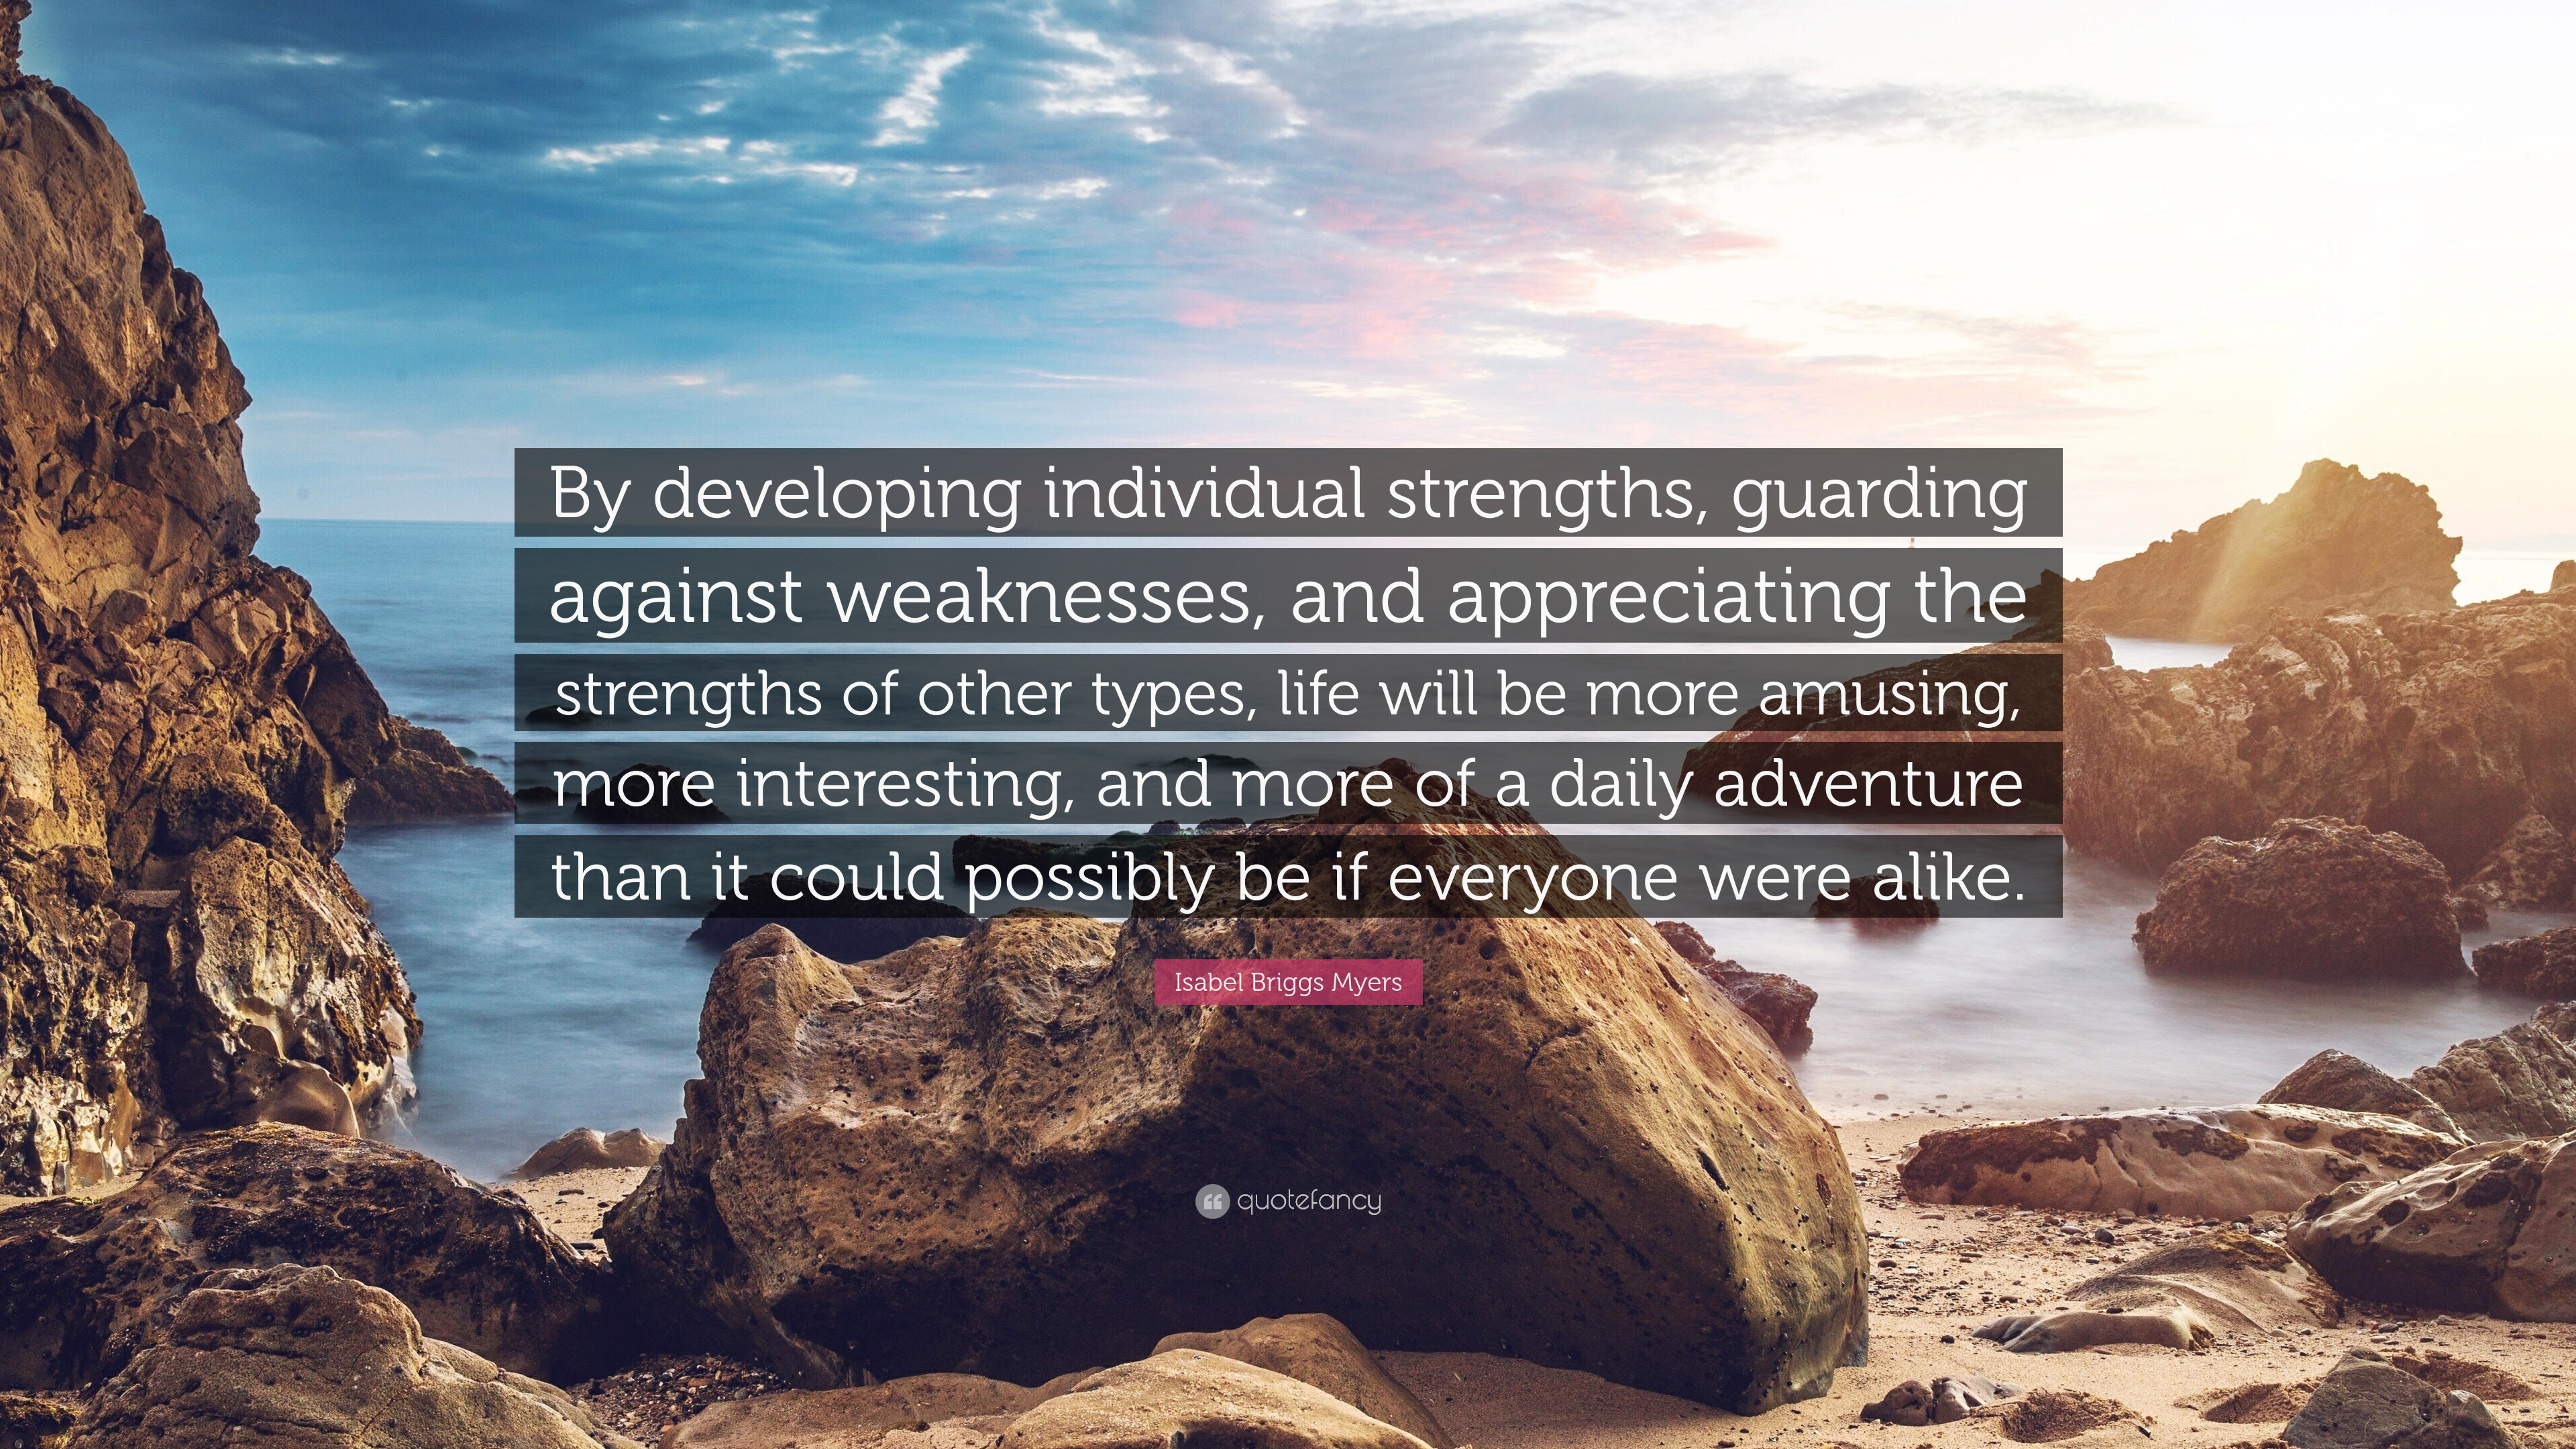 isabel briggs myers quote by developing individual strengths isabel briggs myers quote by developing individual strengths guarding against weaknesses and